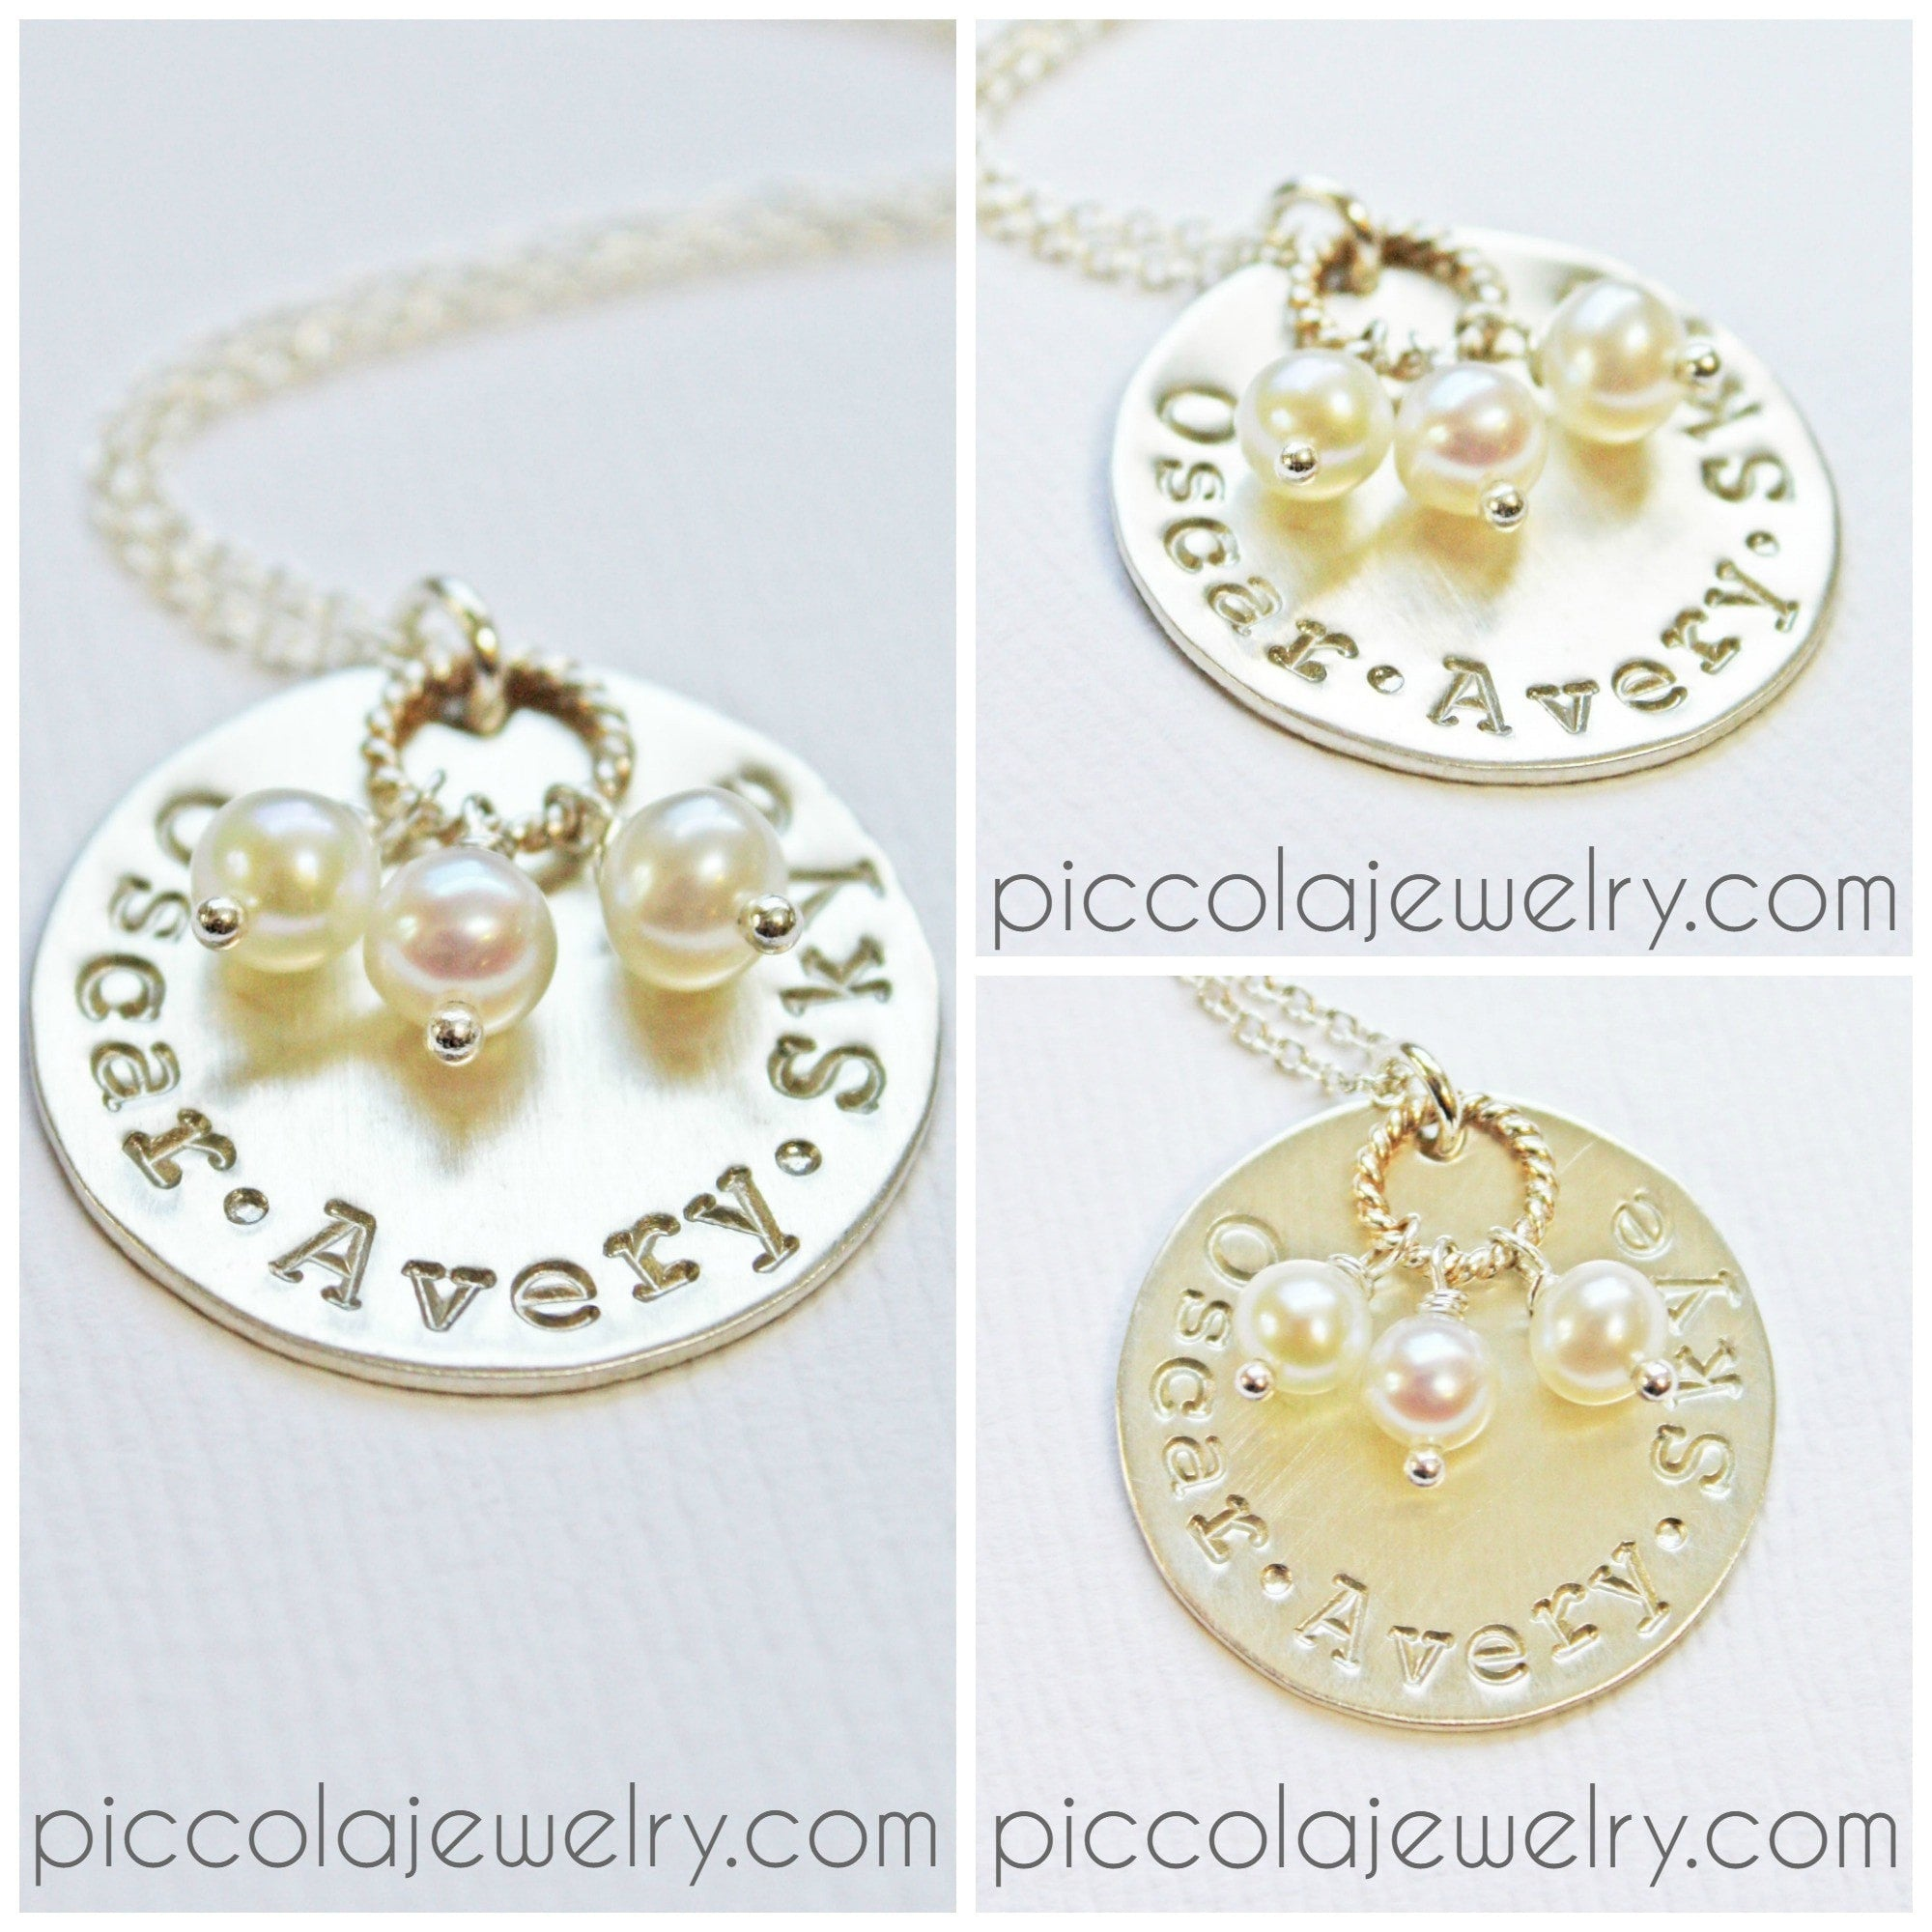 new chloe necklace bridesmaid media dainty gift gold children baby girl personalized charm tiny rose mom name